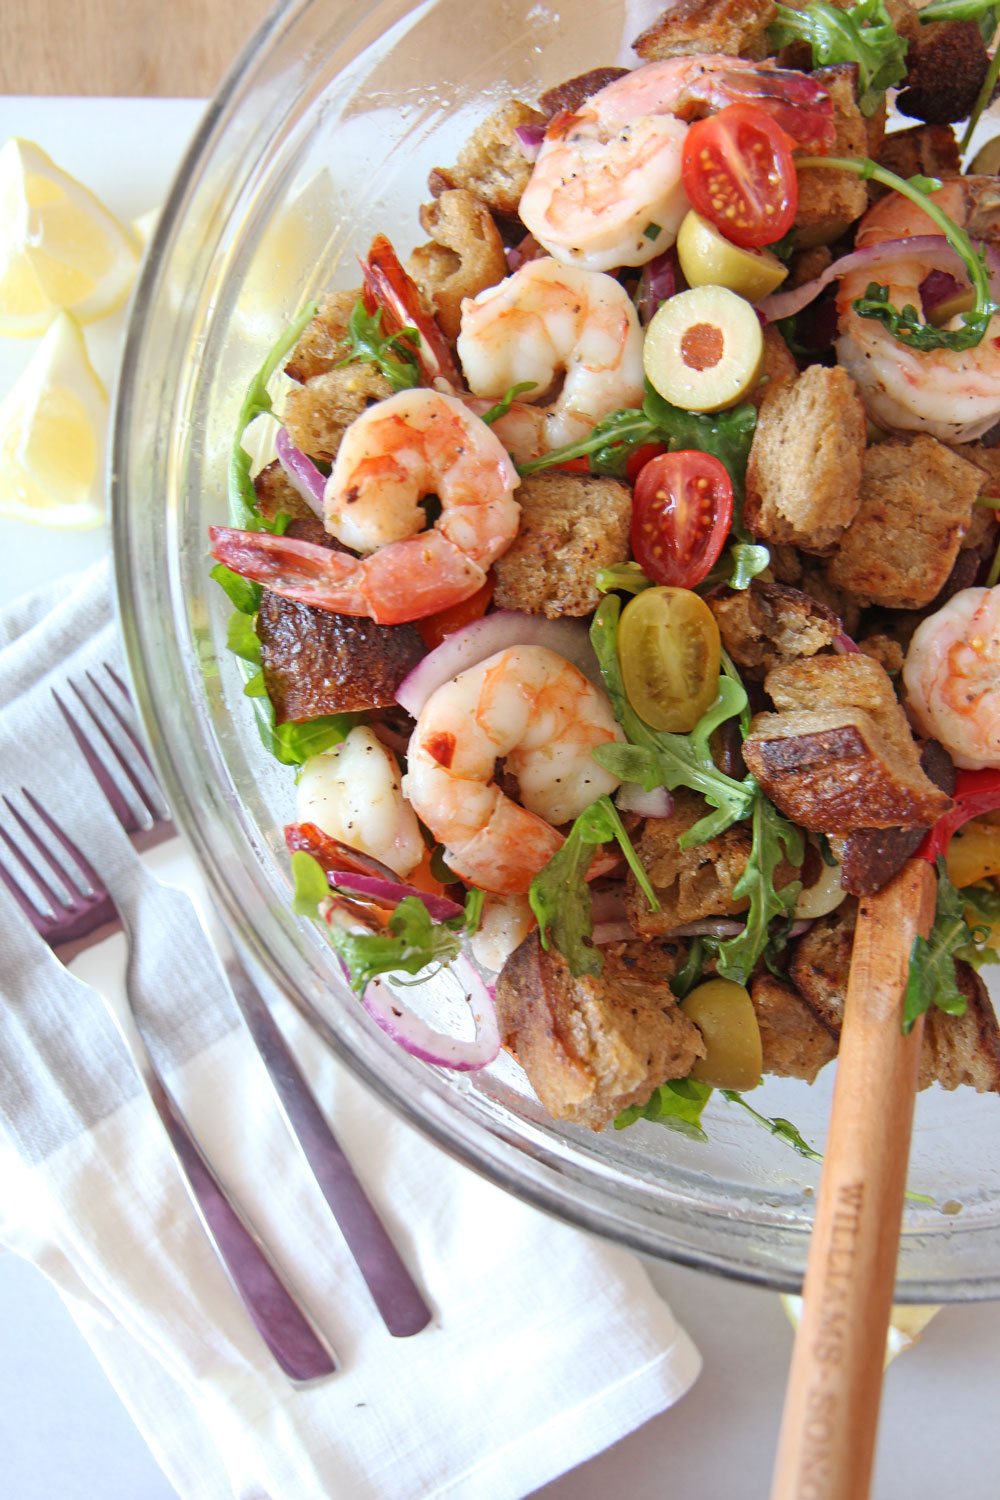 Shrimp and Garlic Bread Panzanella Salad